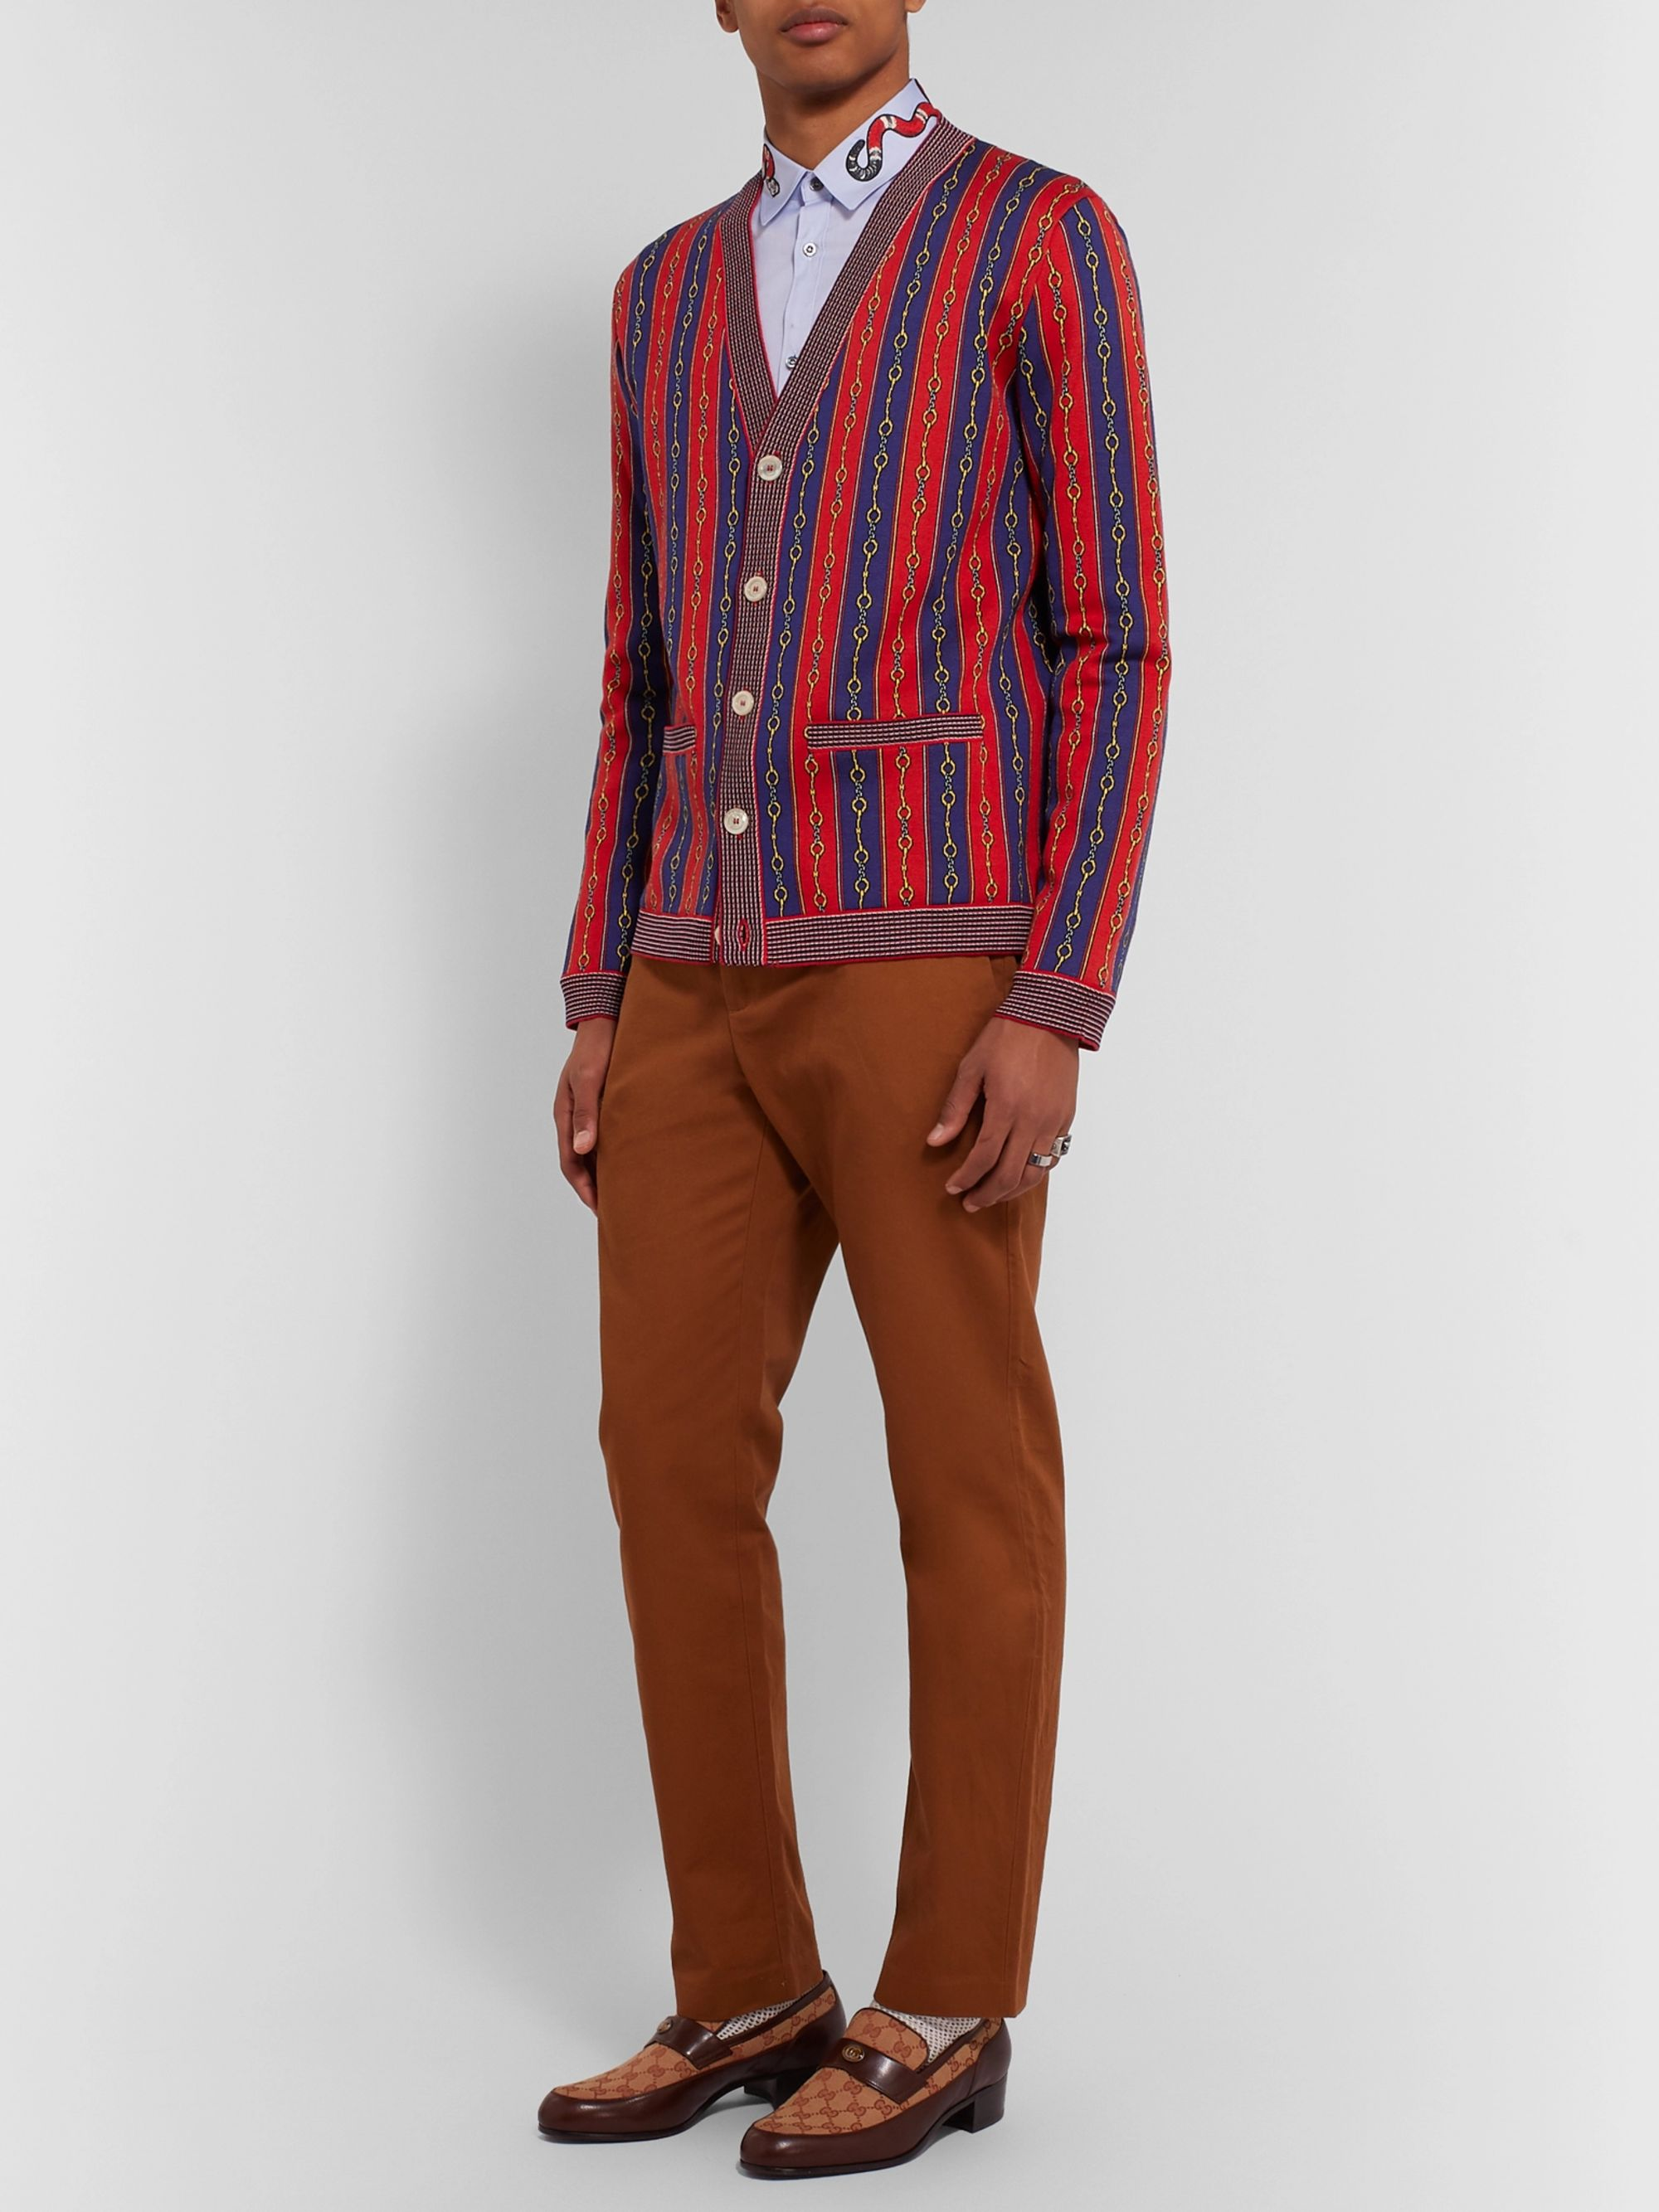 Gucci Cotton, Wool and Cashmere-Blend Jacquard Cardigan